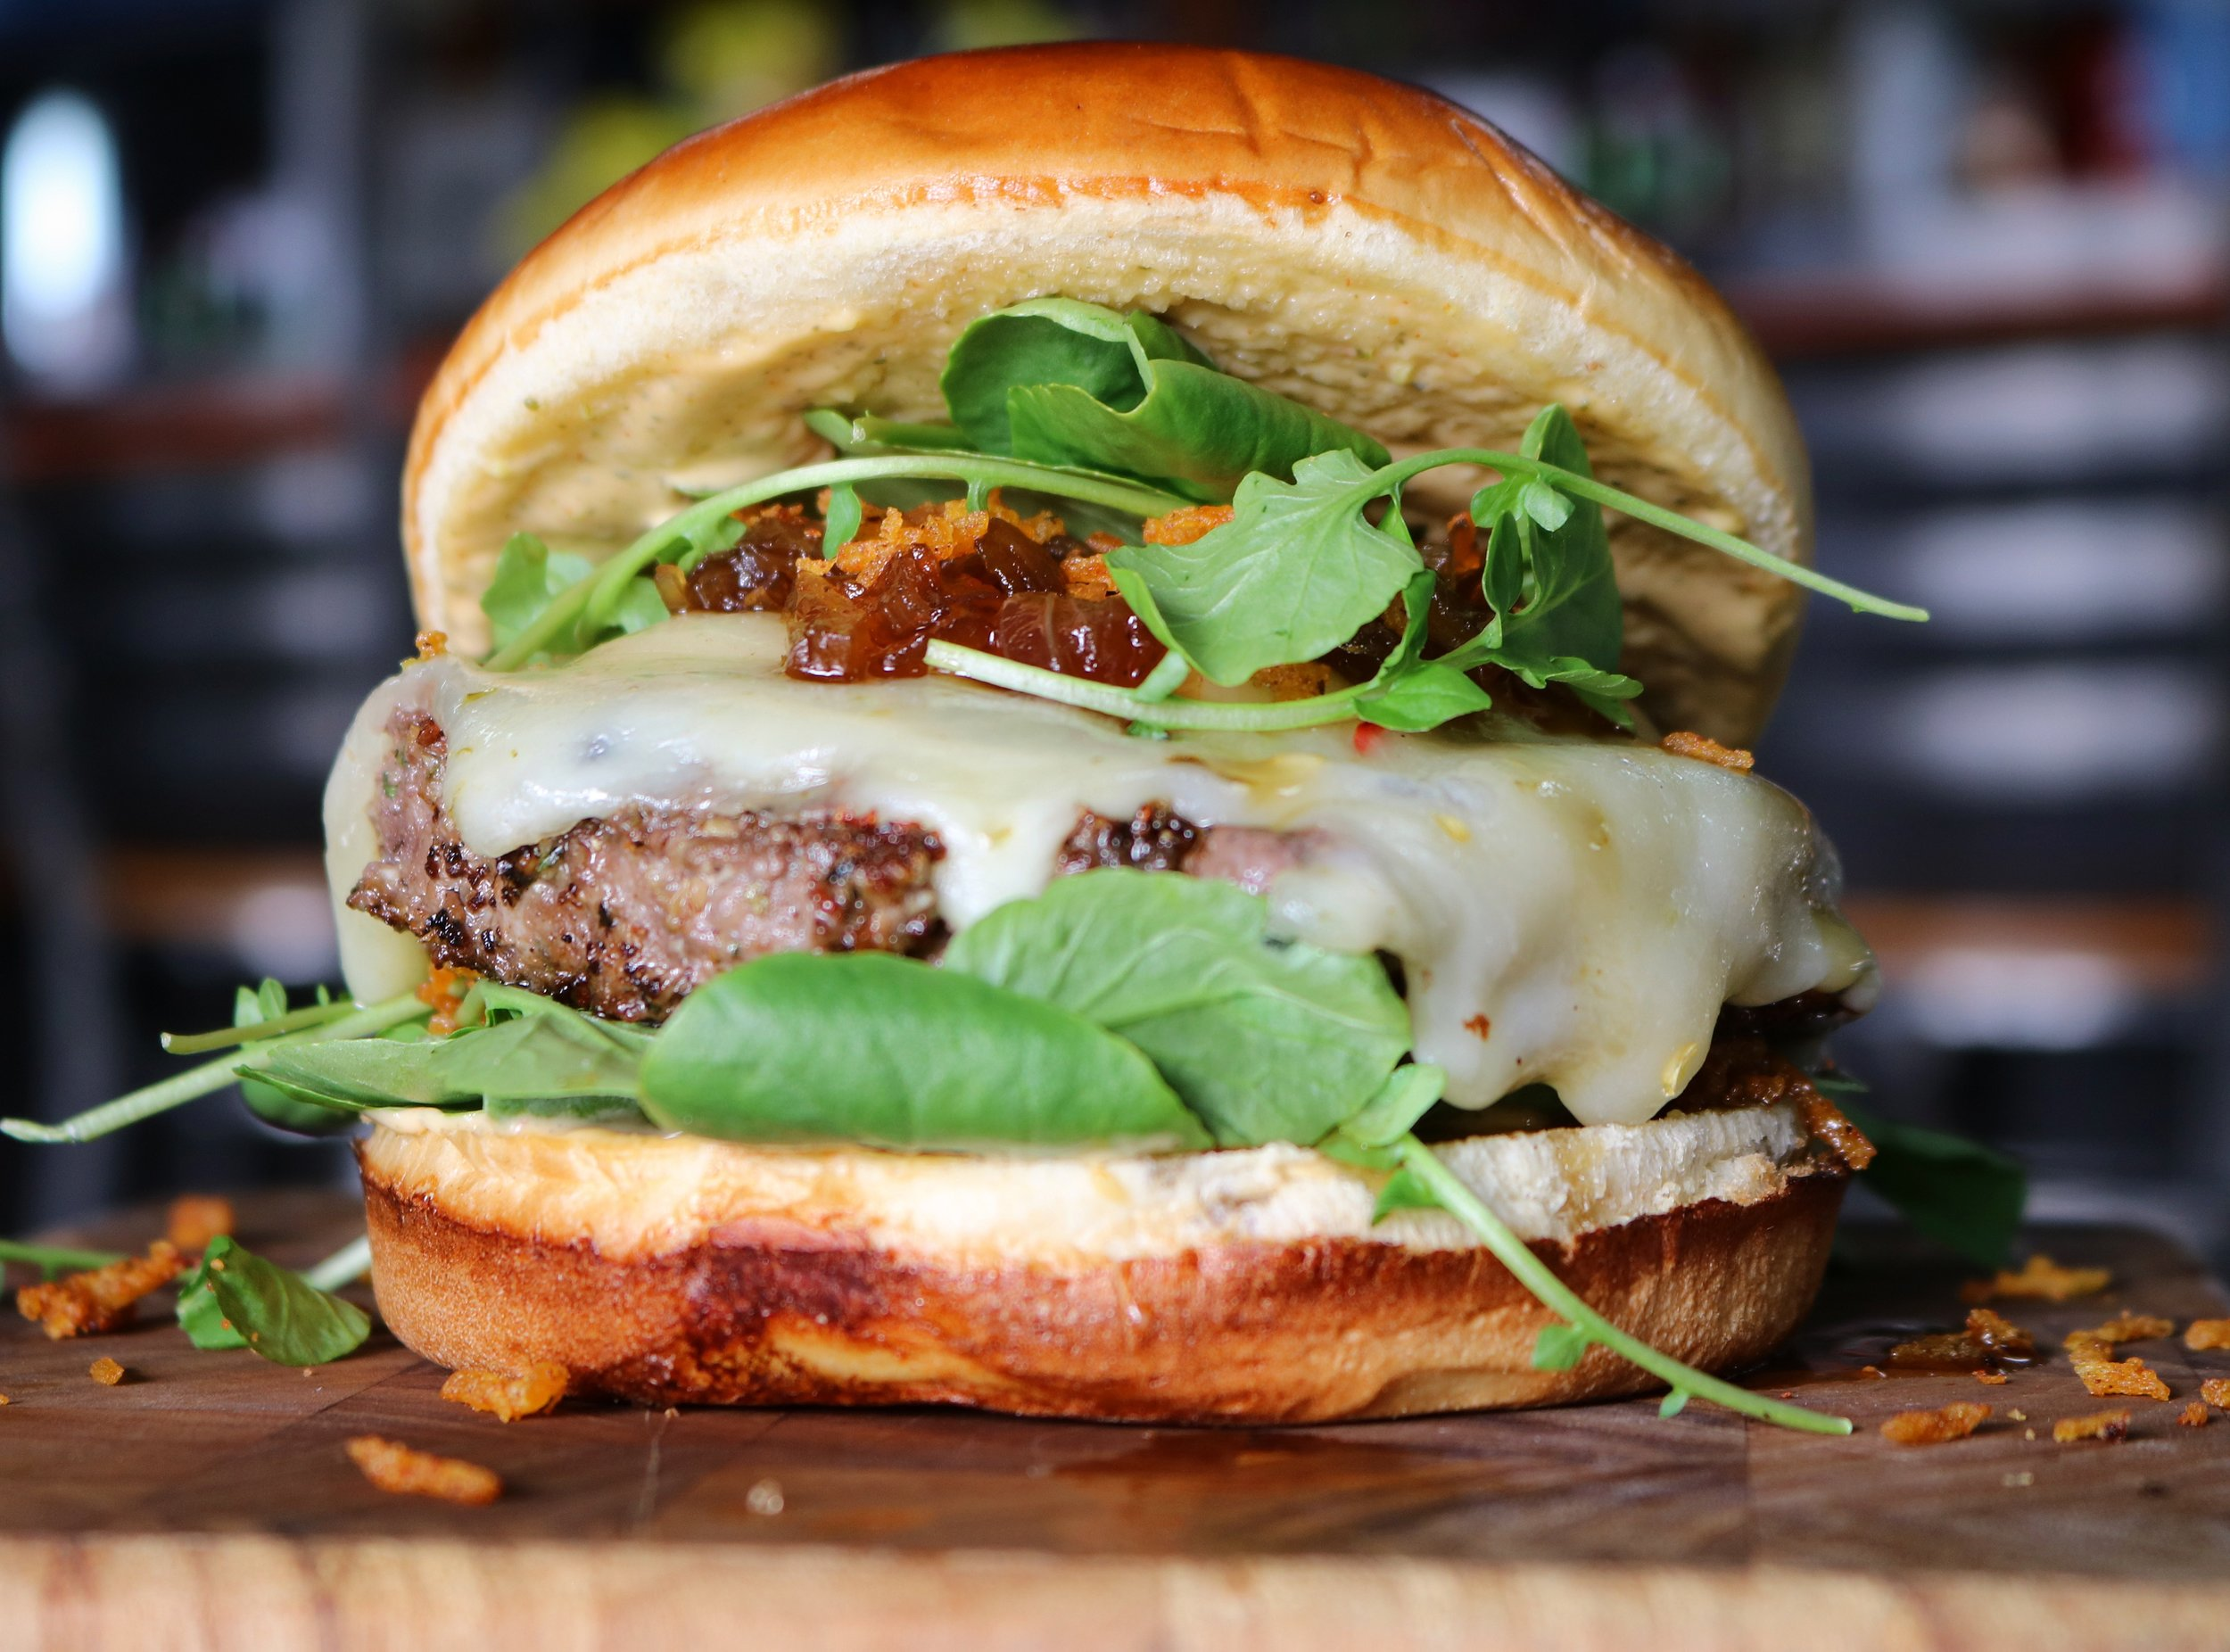 Dr pepper bourbon glazed pepperjack cheeseburger.jpg